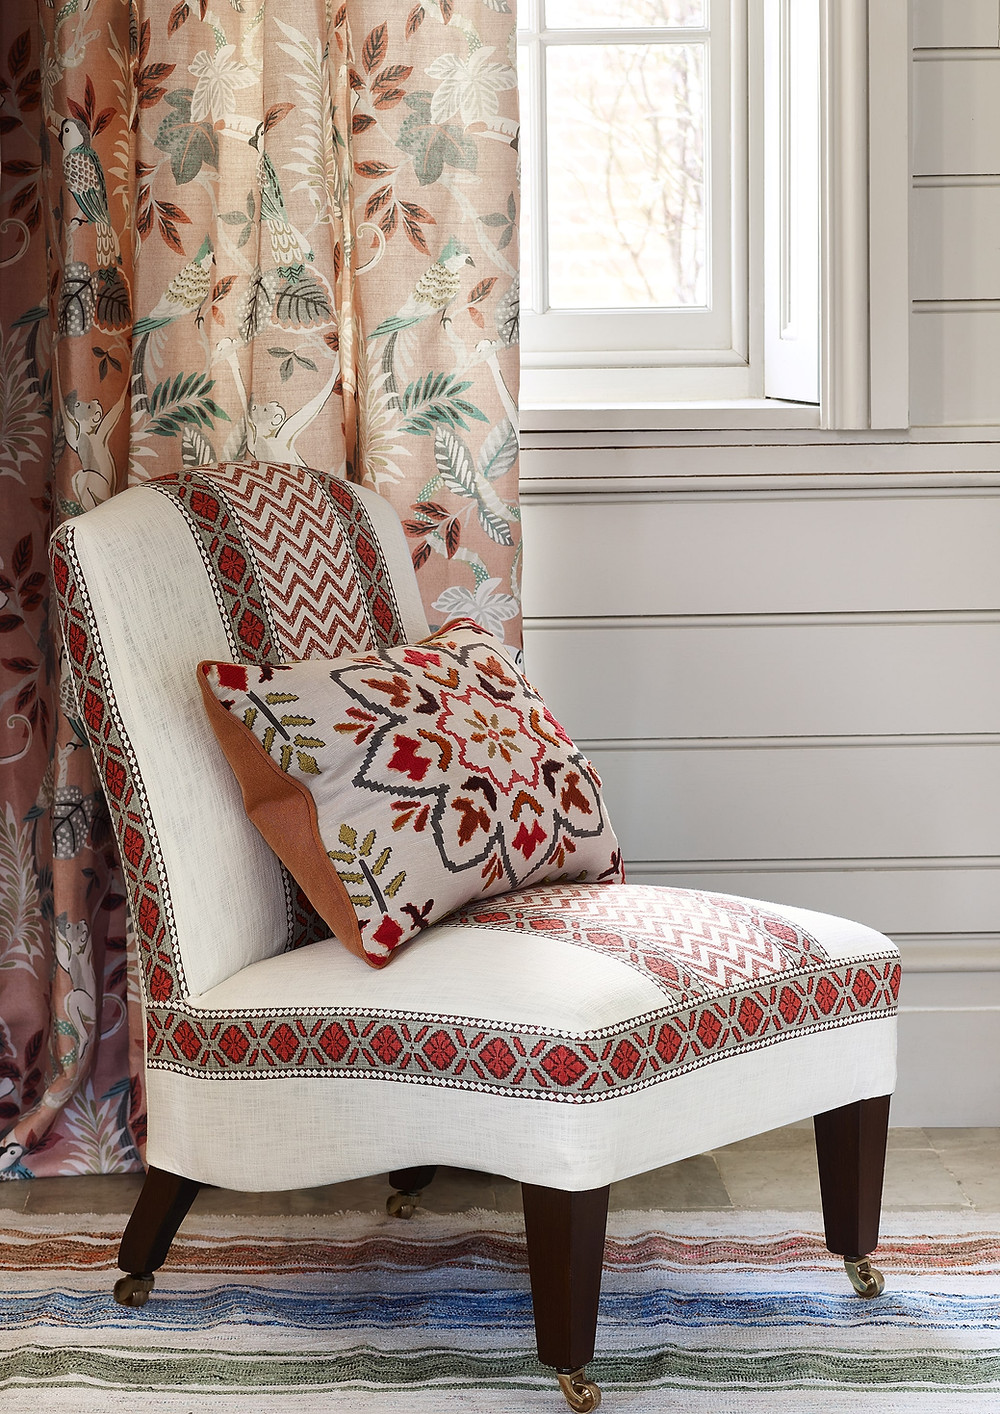 Chair covered in Chari Stripe, curtains in Indira - Jane Churchill spring summer 2018